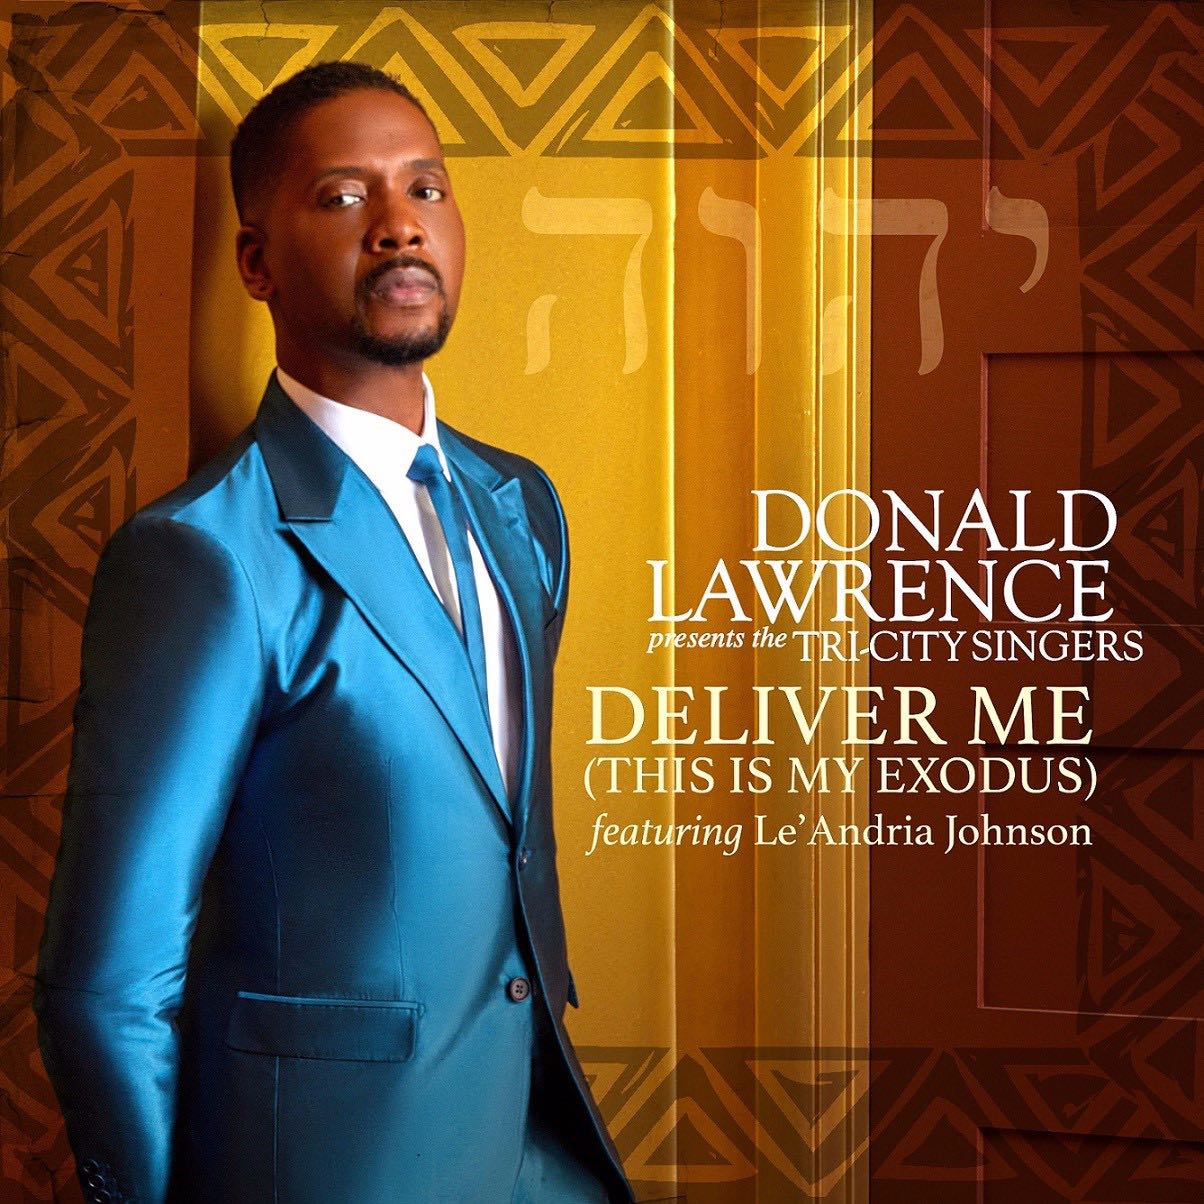 GRAMMY-WINNING MAESTRO DONALD LAWRENCE RELEASES NEW SINGLE WITH THE